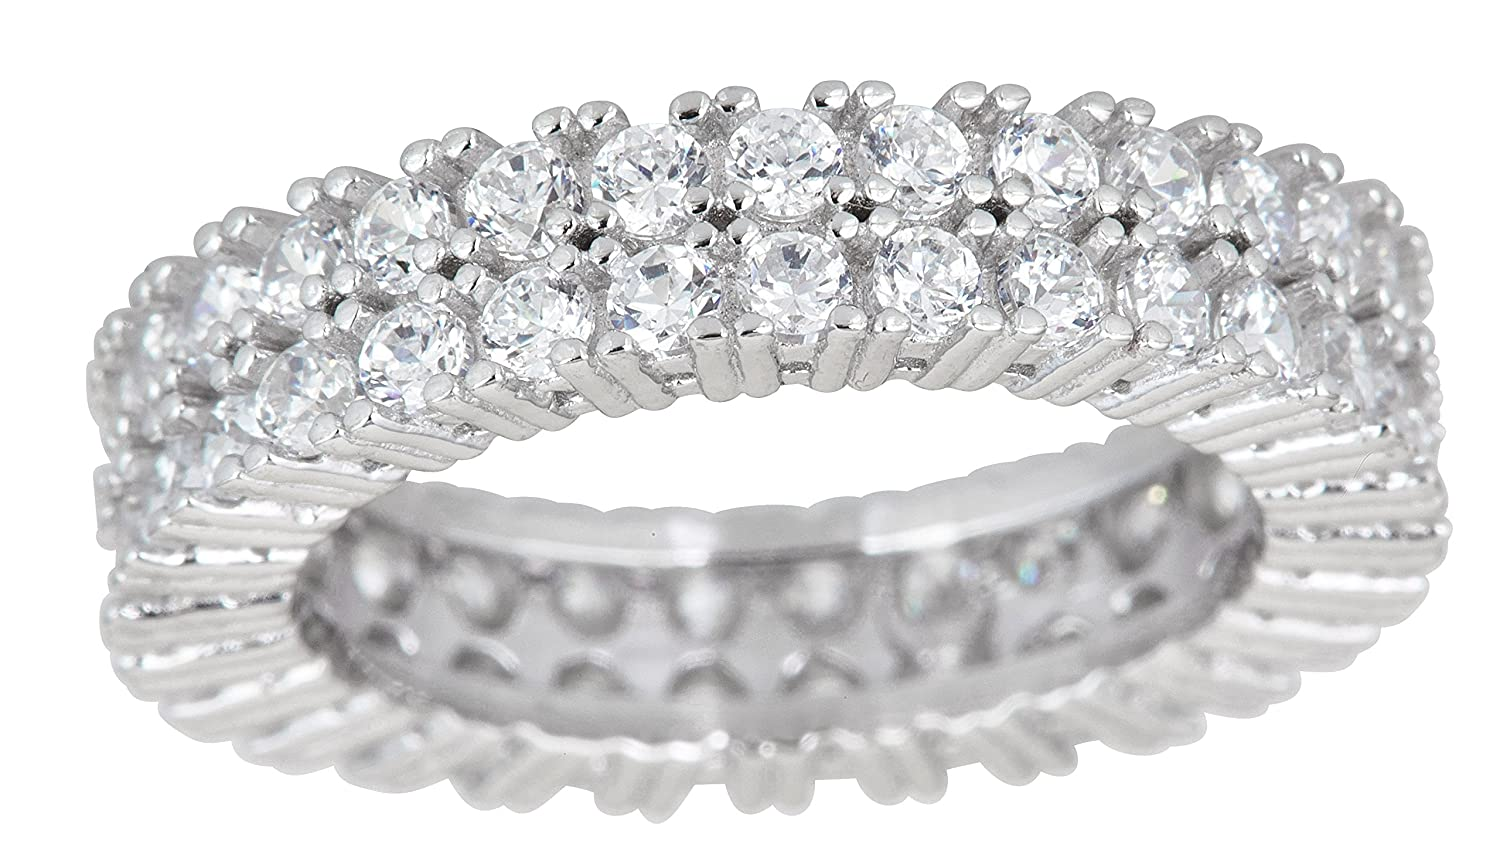 Sterling Silver 2 Row Prong Set Round Cut Cubic Zirconia Eternity Band Ring Decadence SWB148